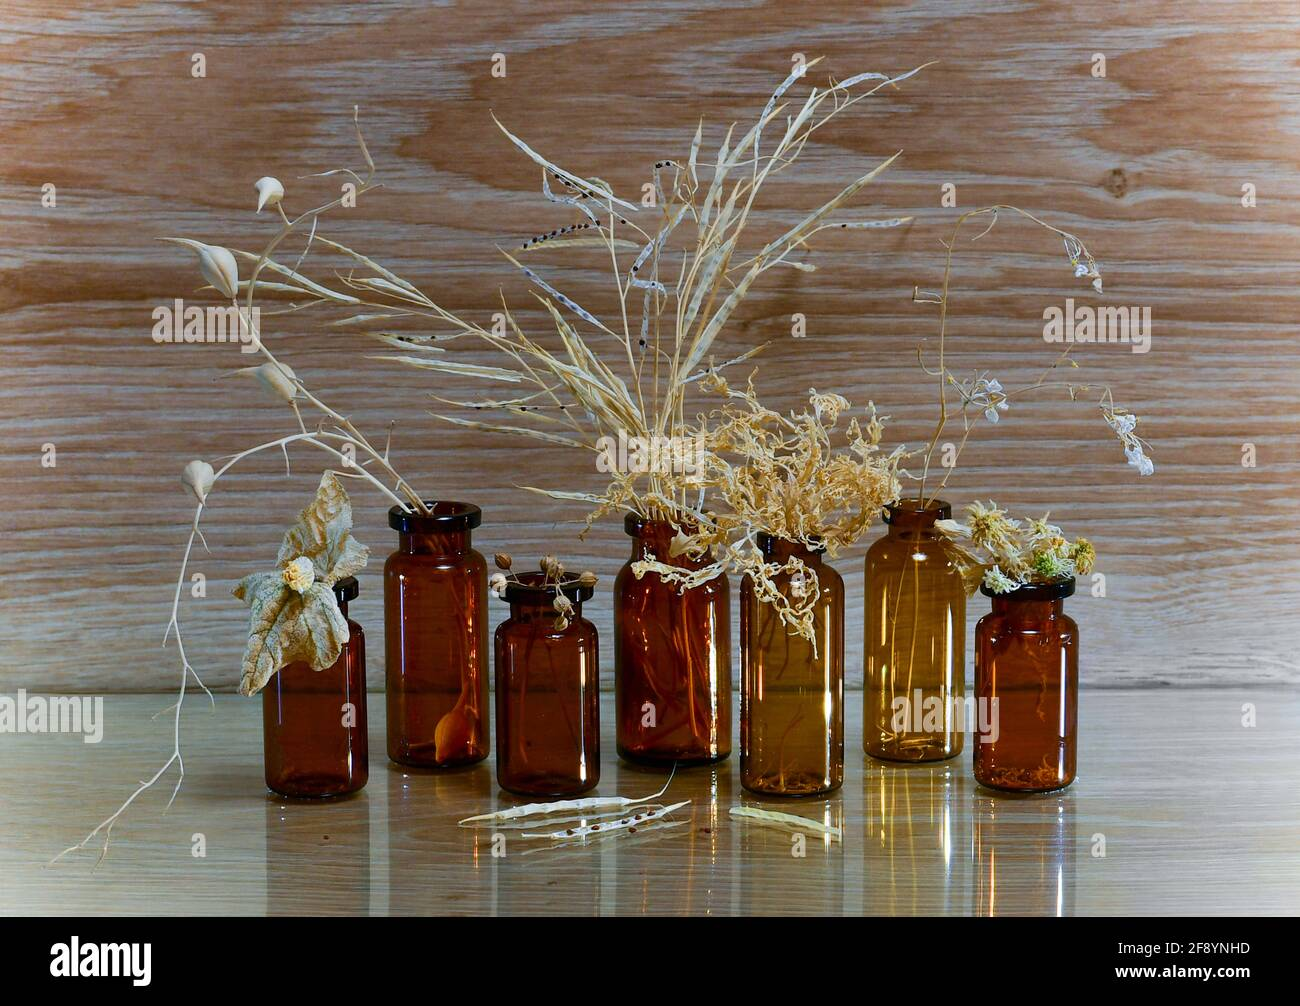 Alternative medicine. Ripe and dried parts of plants are straw colored. Herbs and seeds in brown glass bottles. Stock Photo